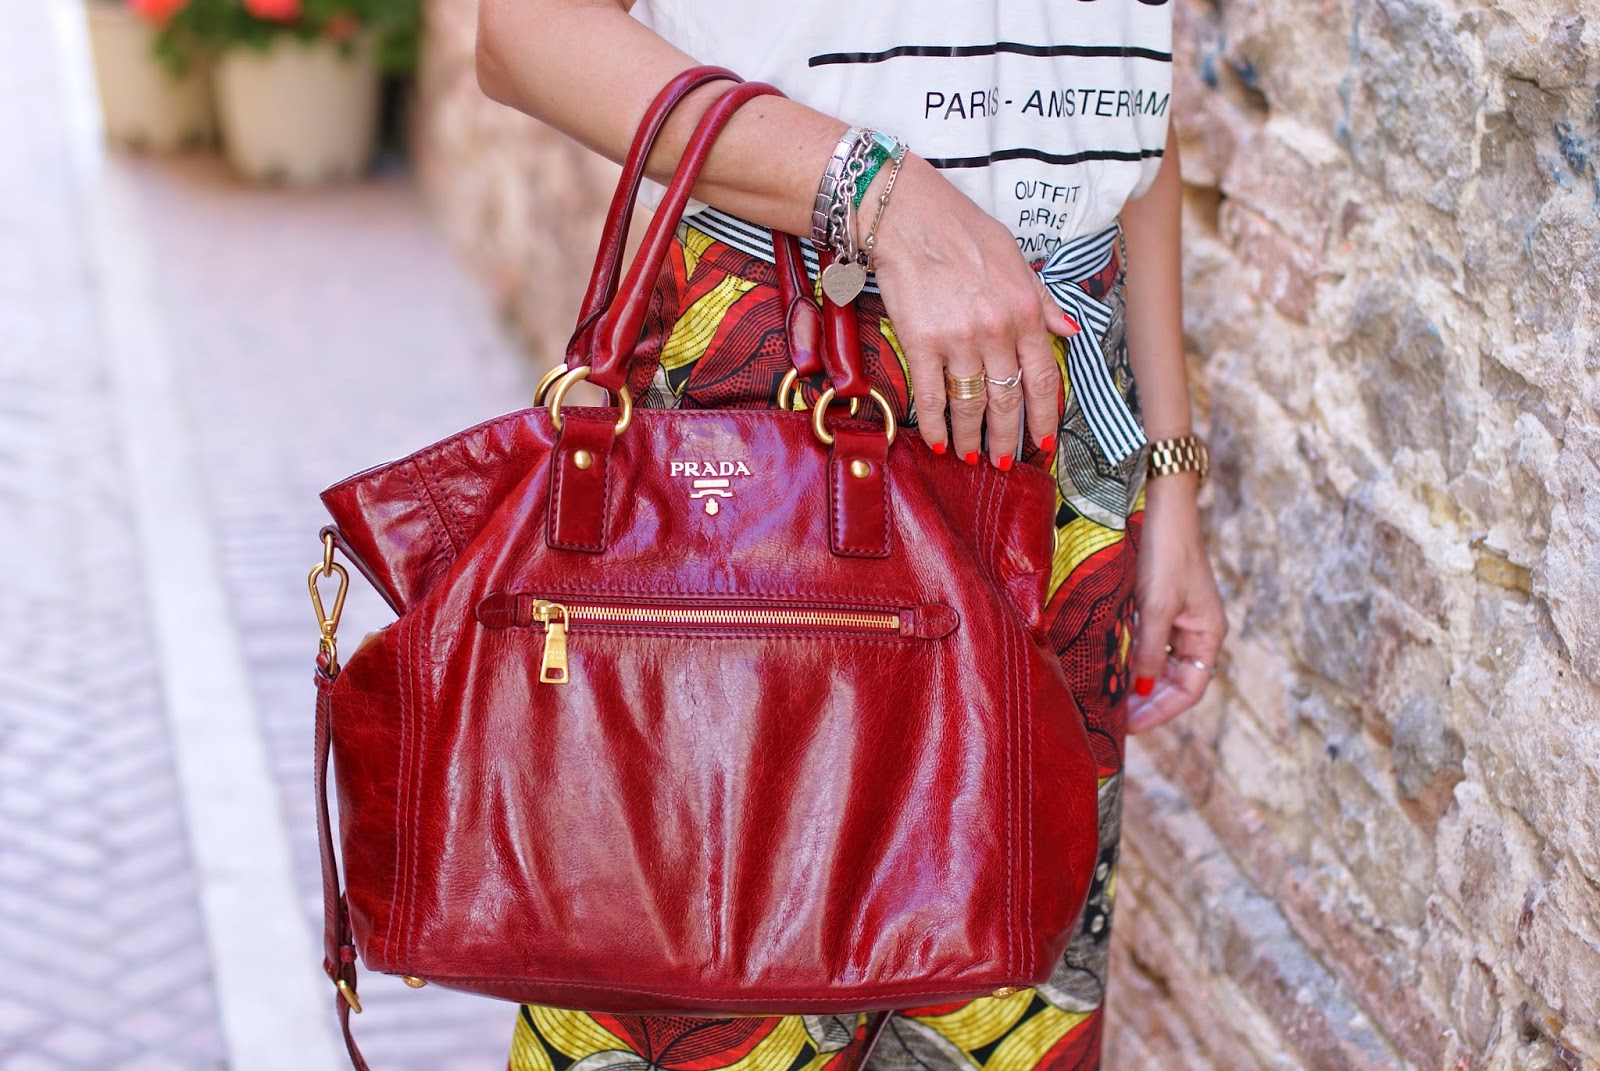 red Prada tote bag, borsa prada rossa, anello bzero bvlgari prezzo, Fashion and Cookies, fashion blogger